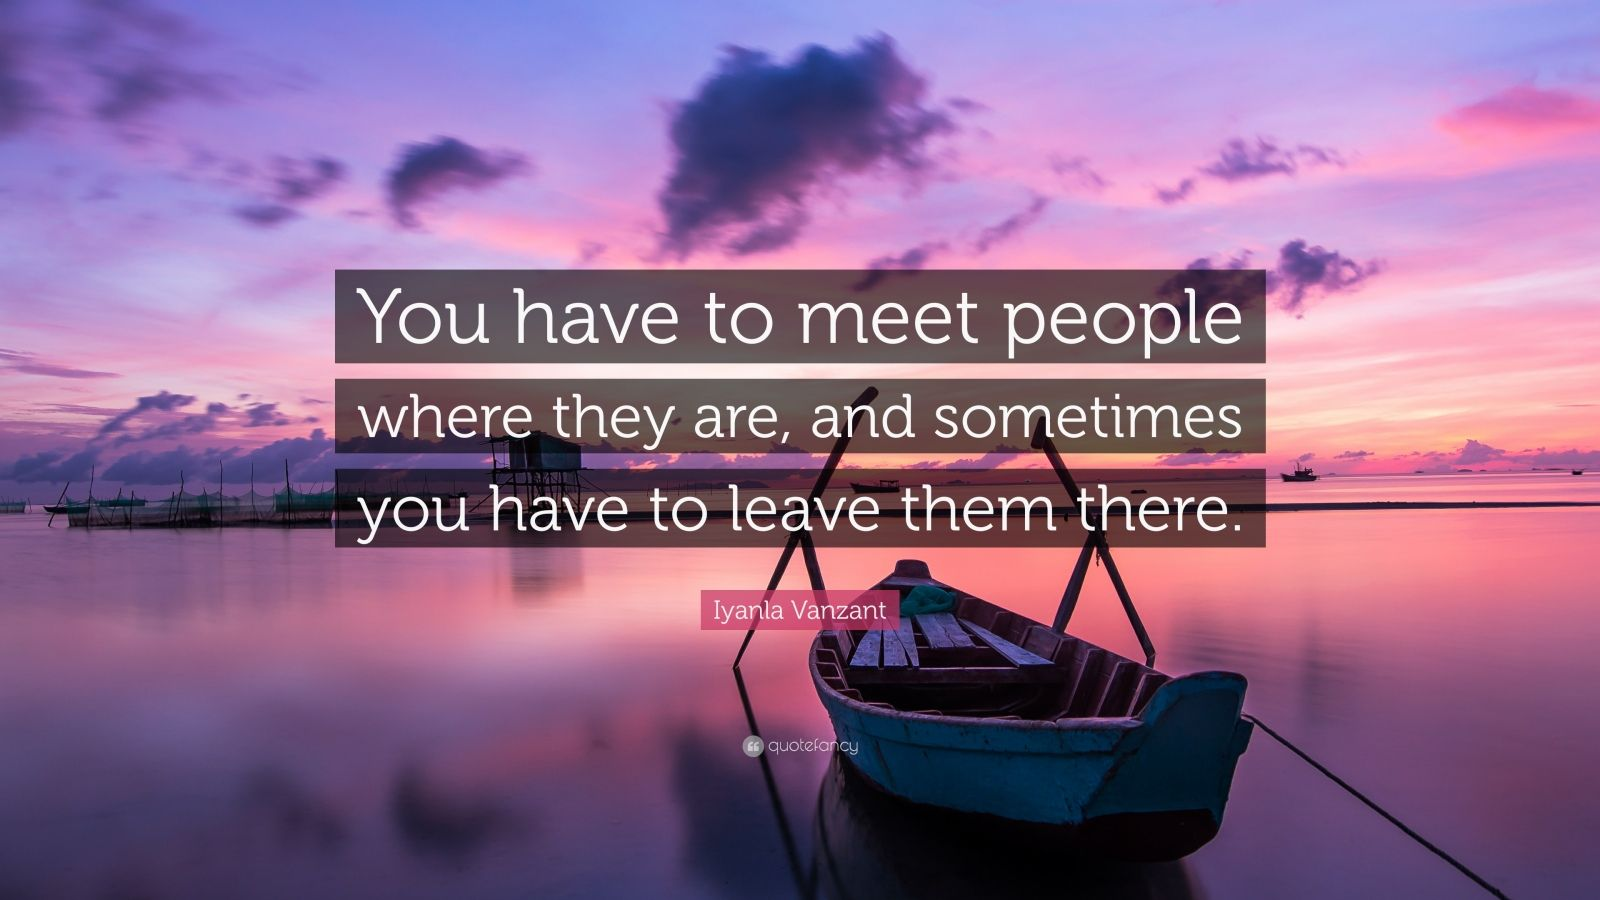 """Iyanla Vanzant Quote: """"You have to meet people where they are, and sometimes you have to leave them there."""""""